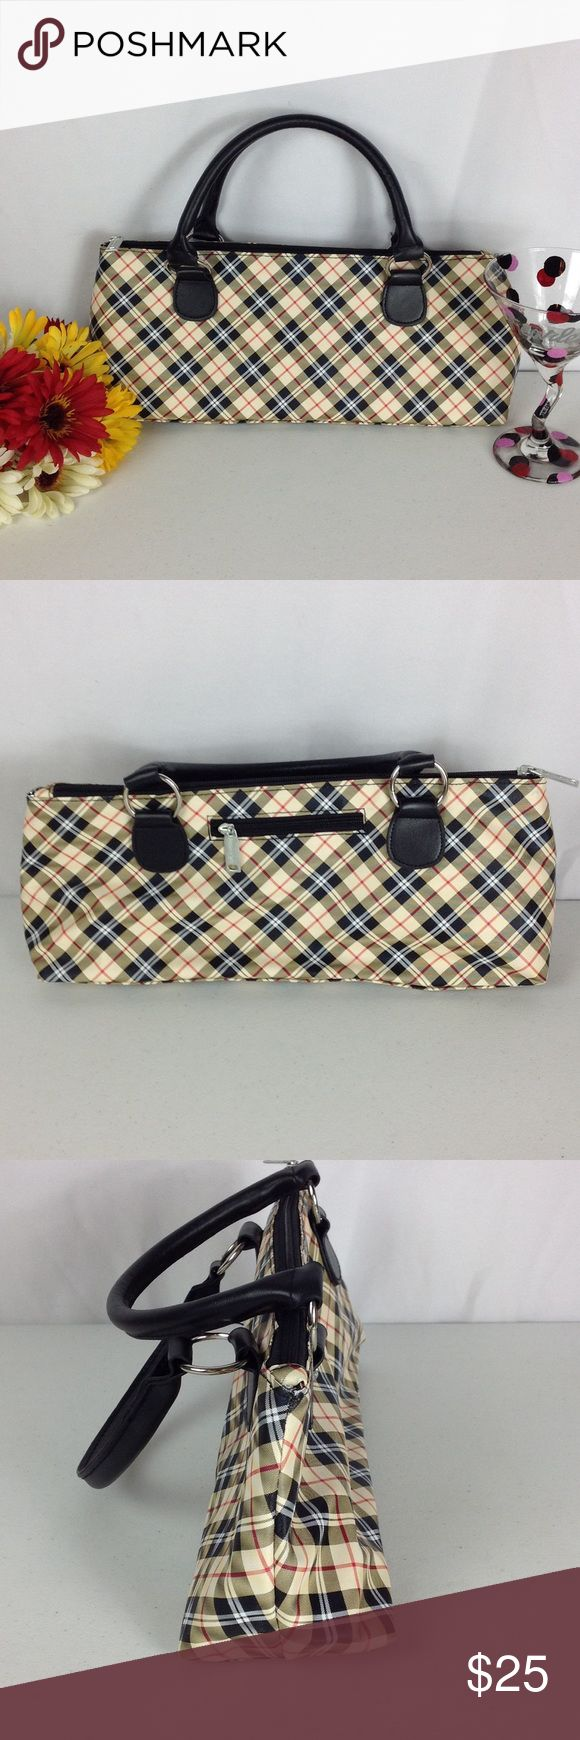 EUC Primeware Insulated Wine Purse Plaid This beautiful purse is in excellent pre-owned condition. This awesome wine purse/cooler measures 14in x 6in x 4in and features an insulated lining. All reasonable offers will be accepted. Primeware Bags #WinePurse